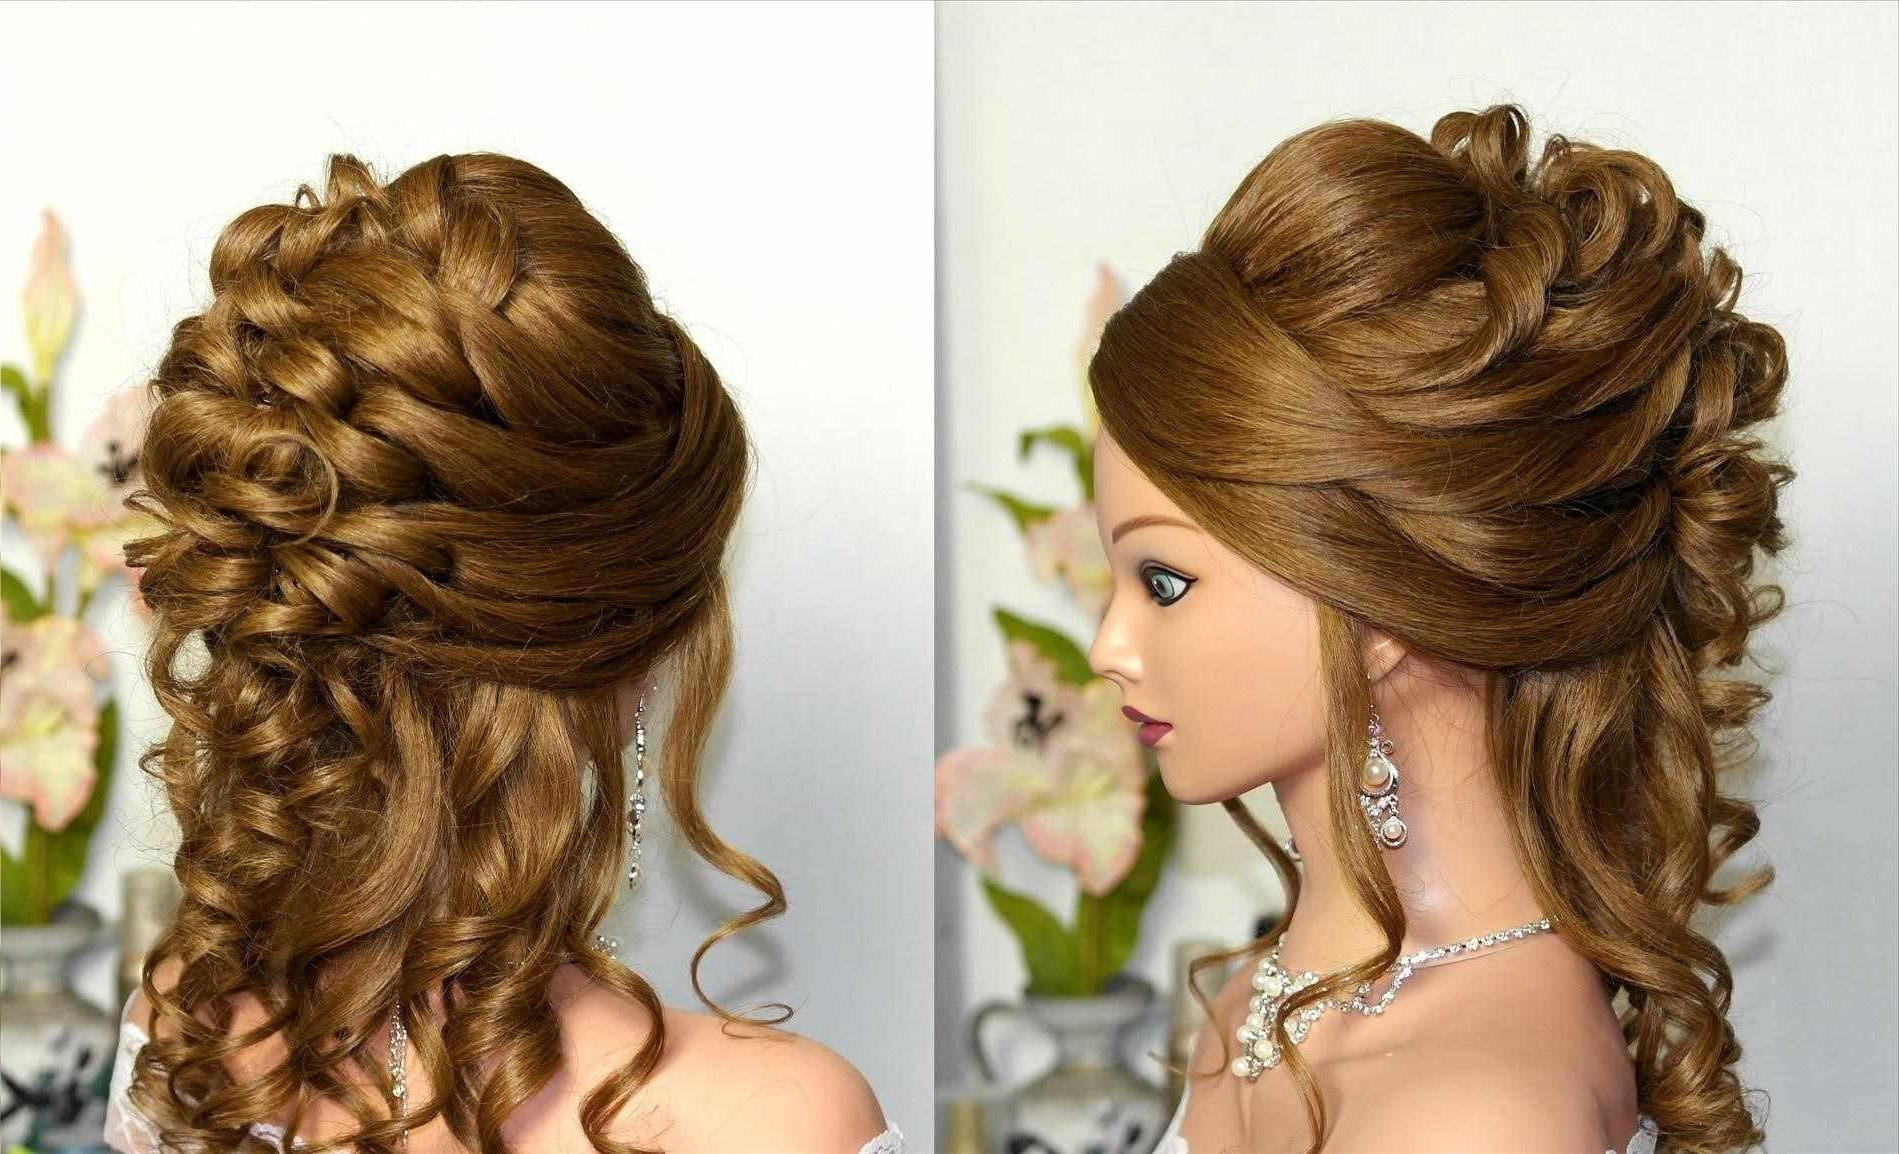 Trendy Low Bun Updo Hairstyles Tutorials Easy Cute Impressive For Within Easy Updo Hairstyles For Shoulder Length Hair (View 13 of 15)